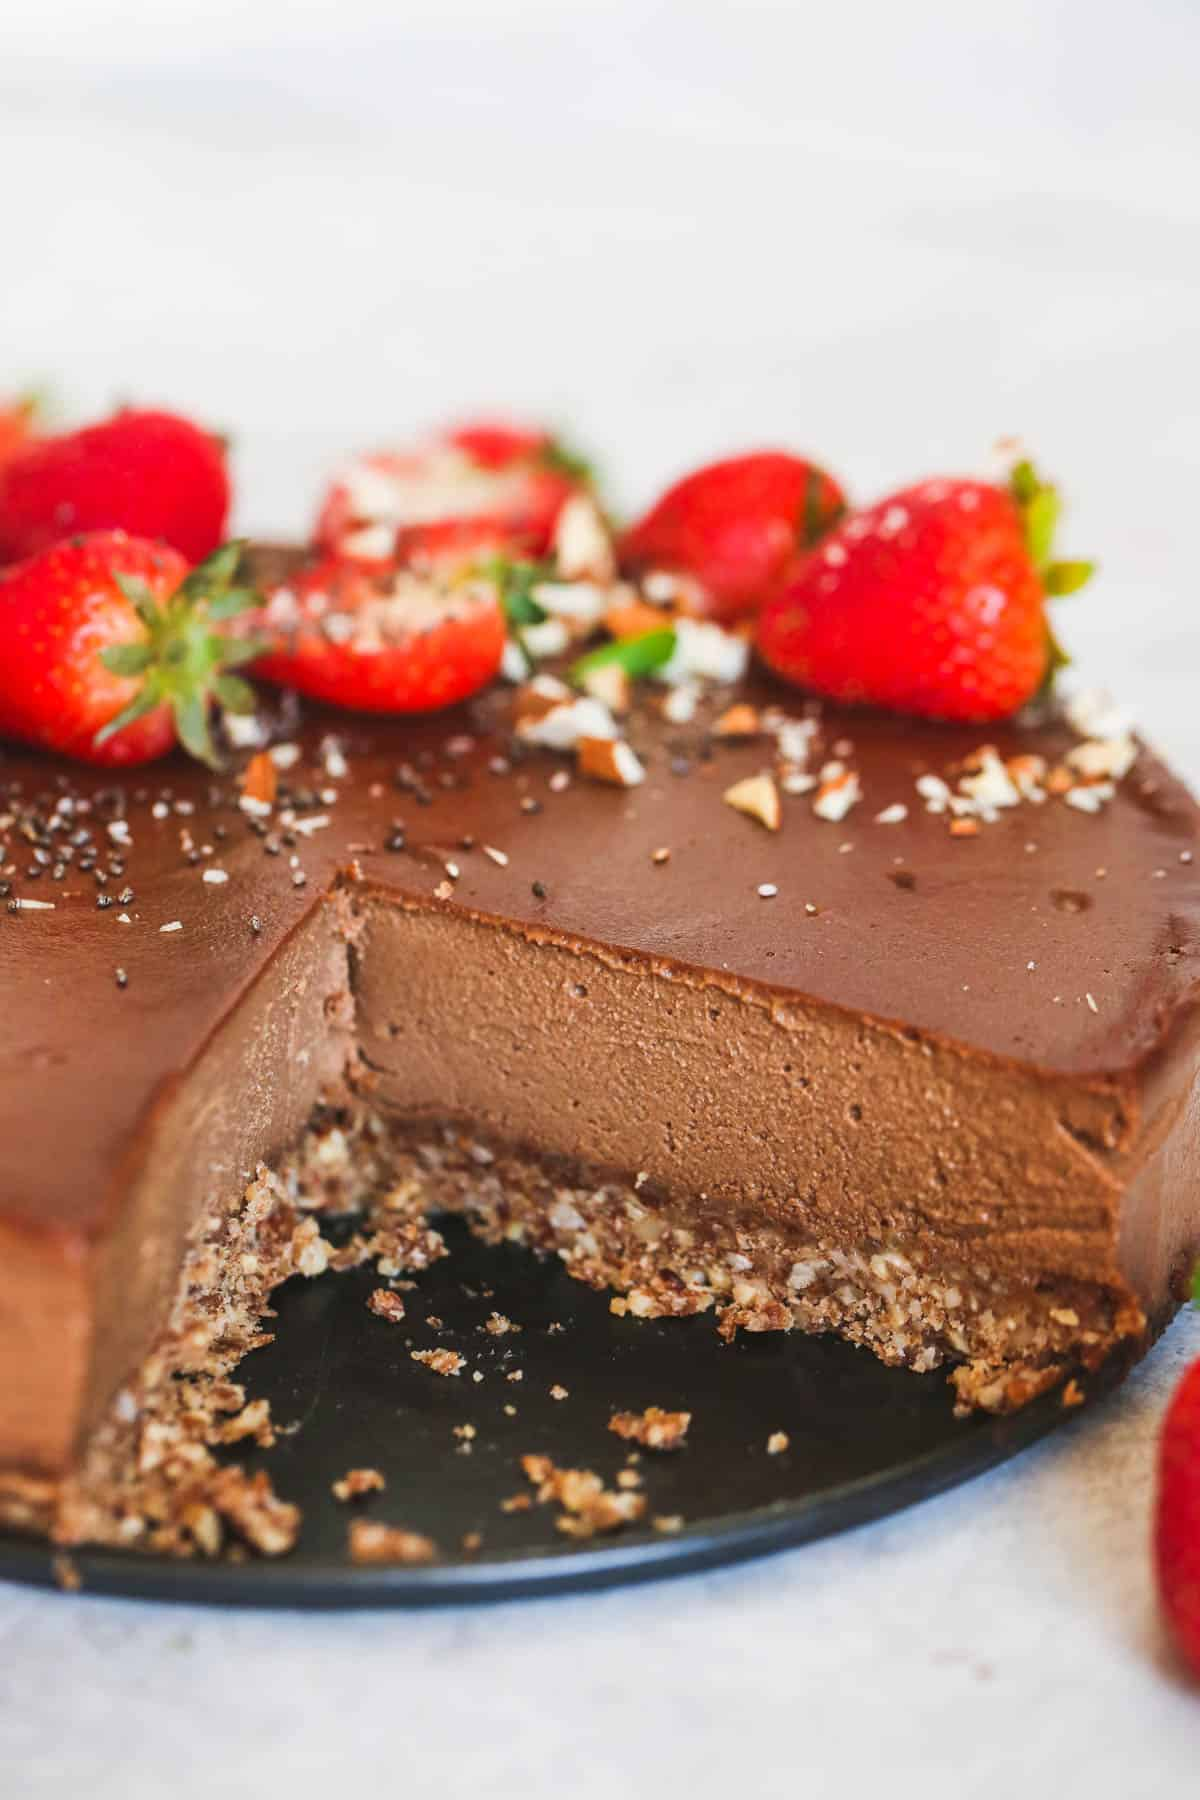 The most delicious vegan chocolate cheesecake decorated with strawberries